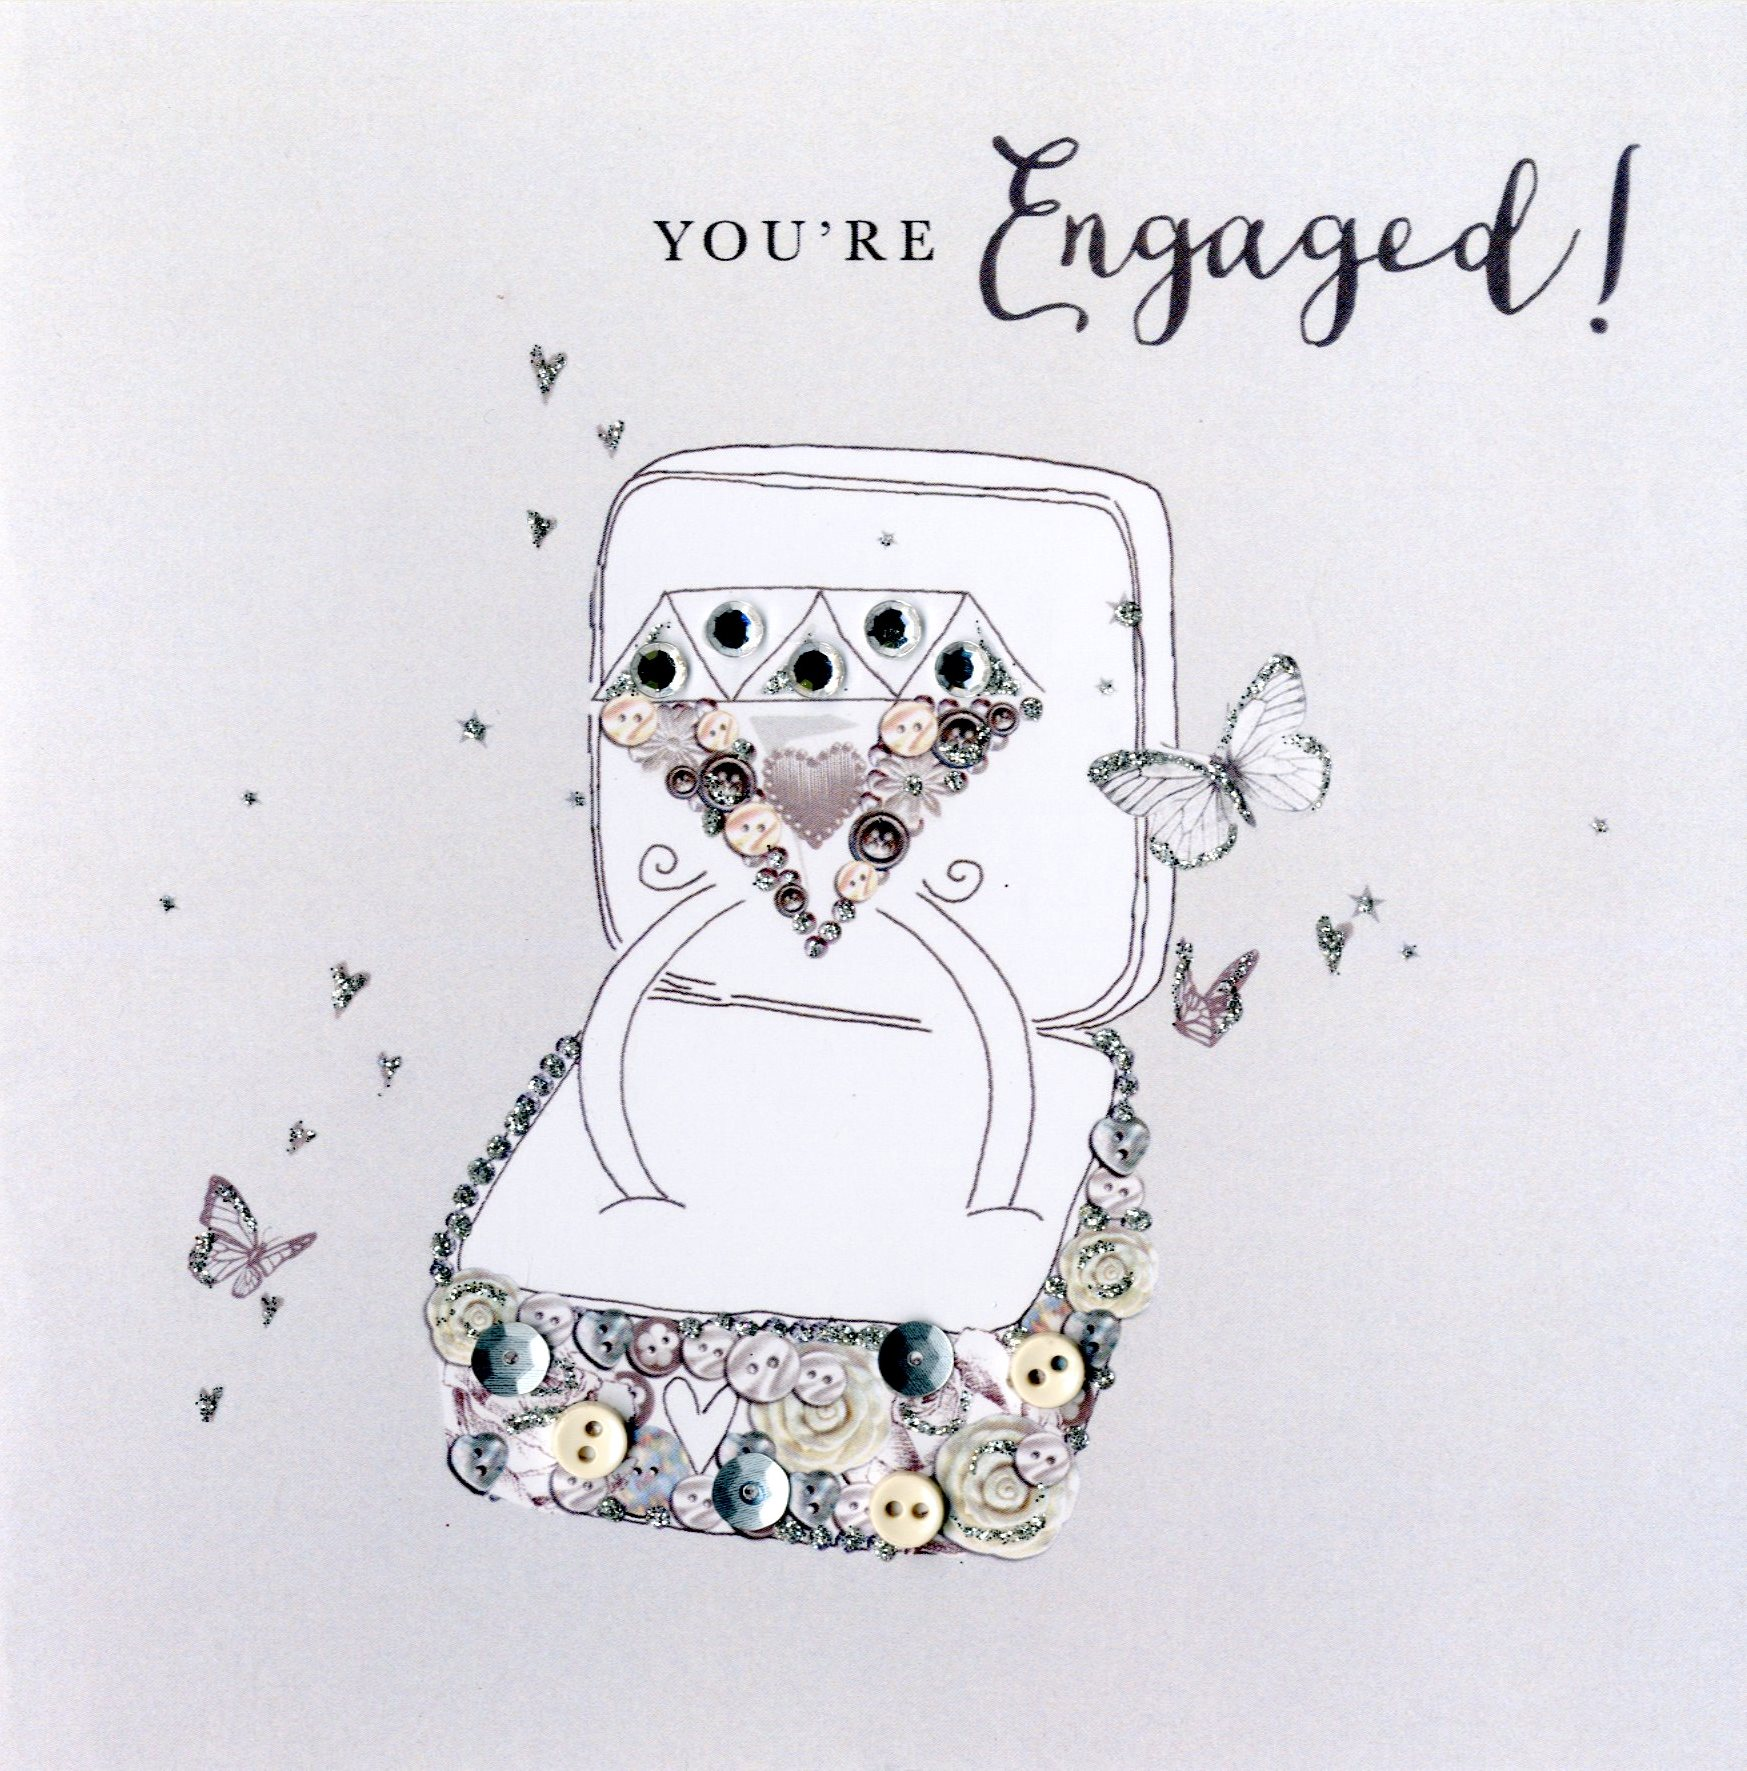 Youre Engaged Engagement Buttoned Up Greeting Card Cards Love Kates